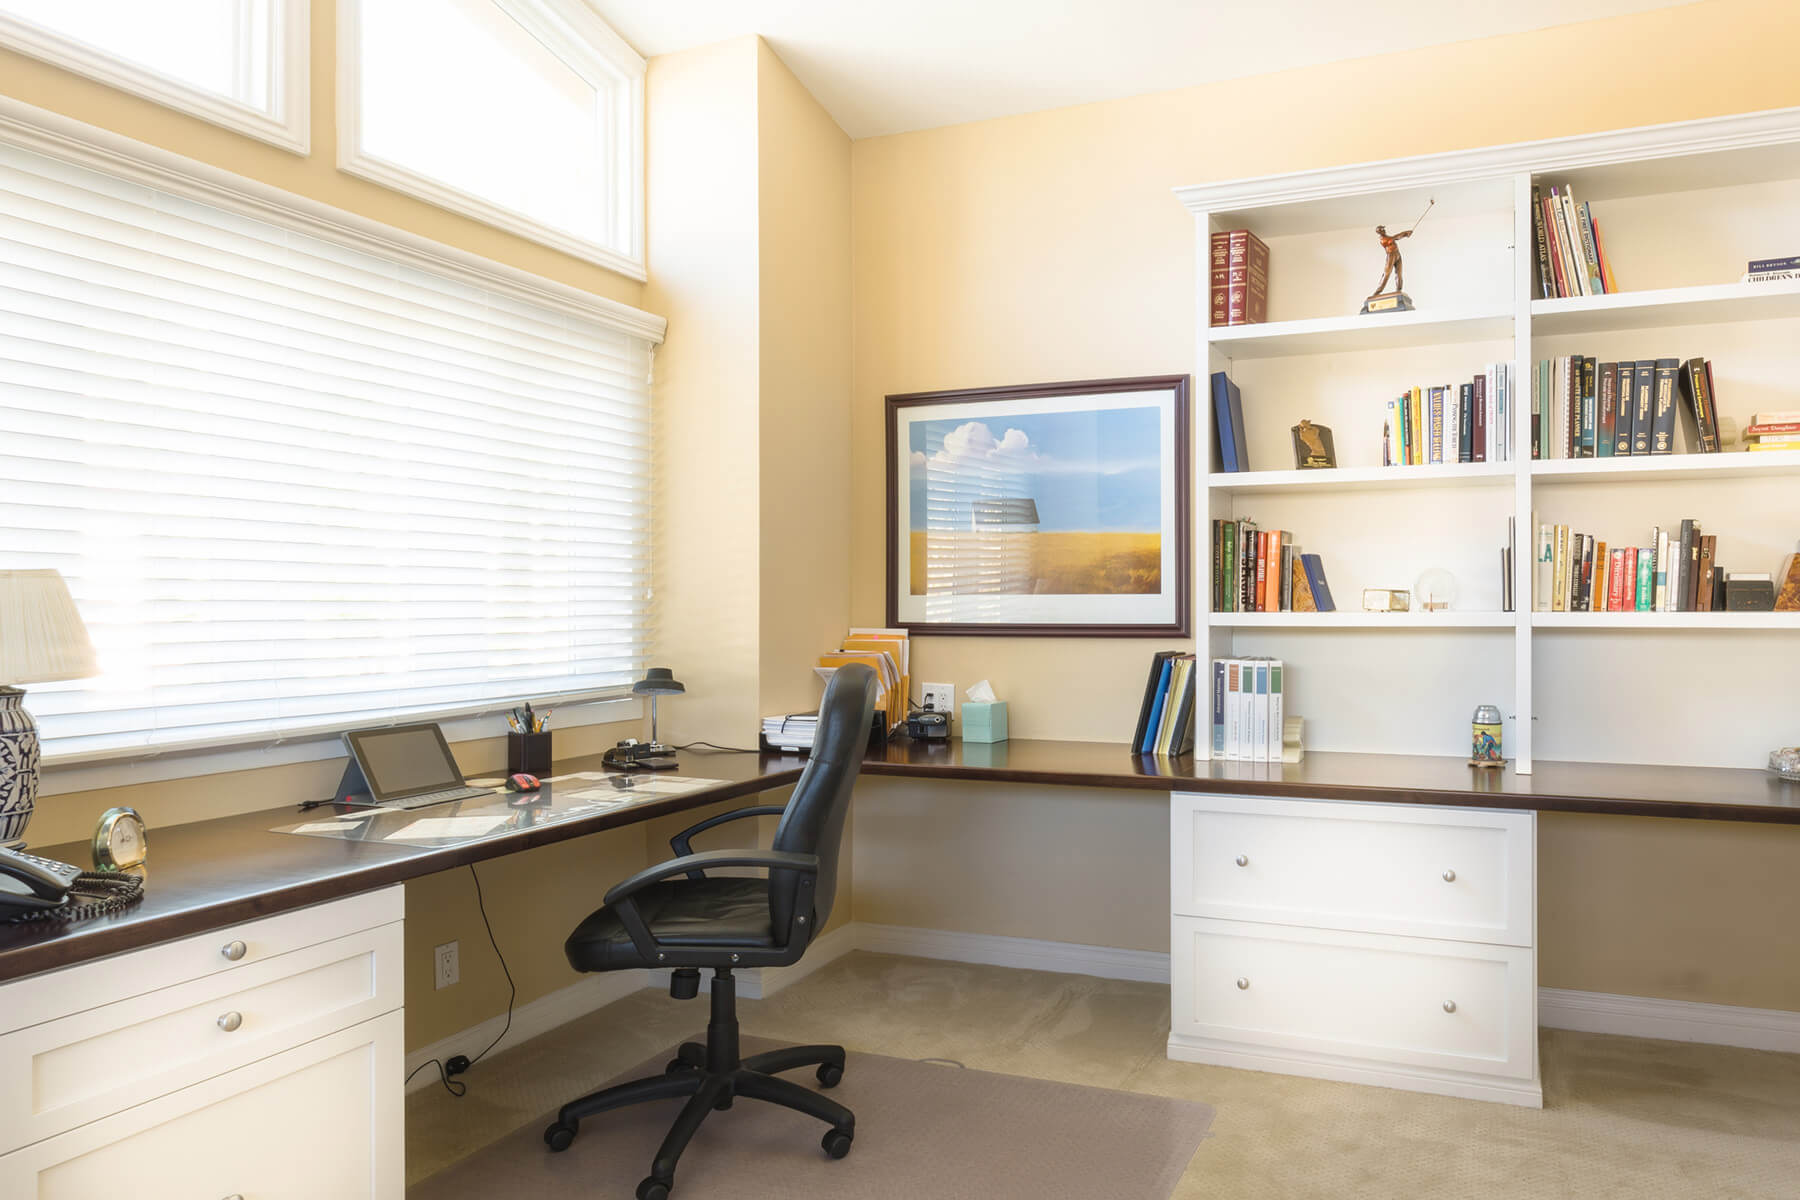 Home Office with Dual Built-In Desks and Floating Shelves